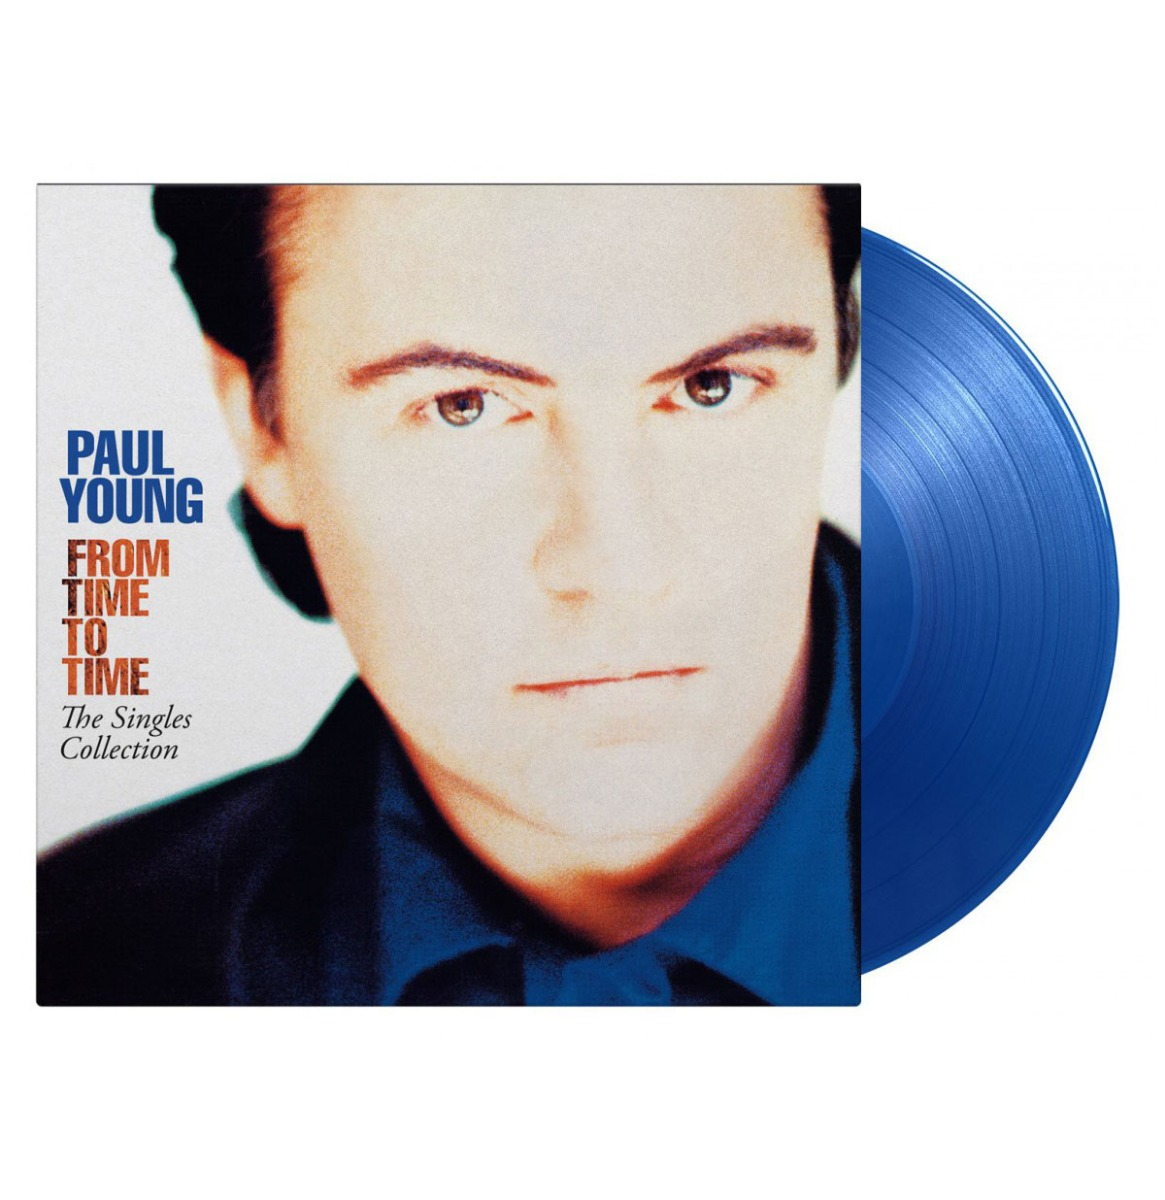 Paul Young - From Time To Time The Singles Collection 2 LP (Gekleurd Vinyl)